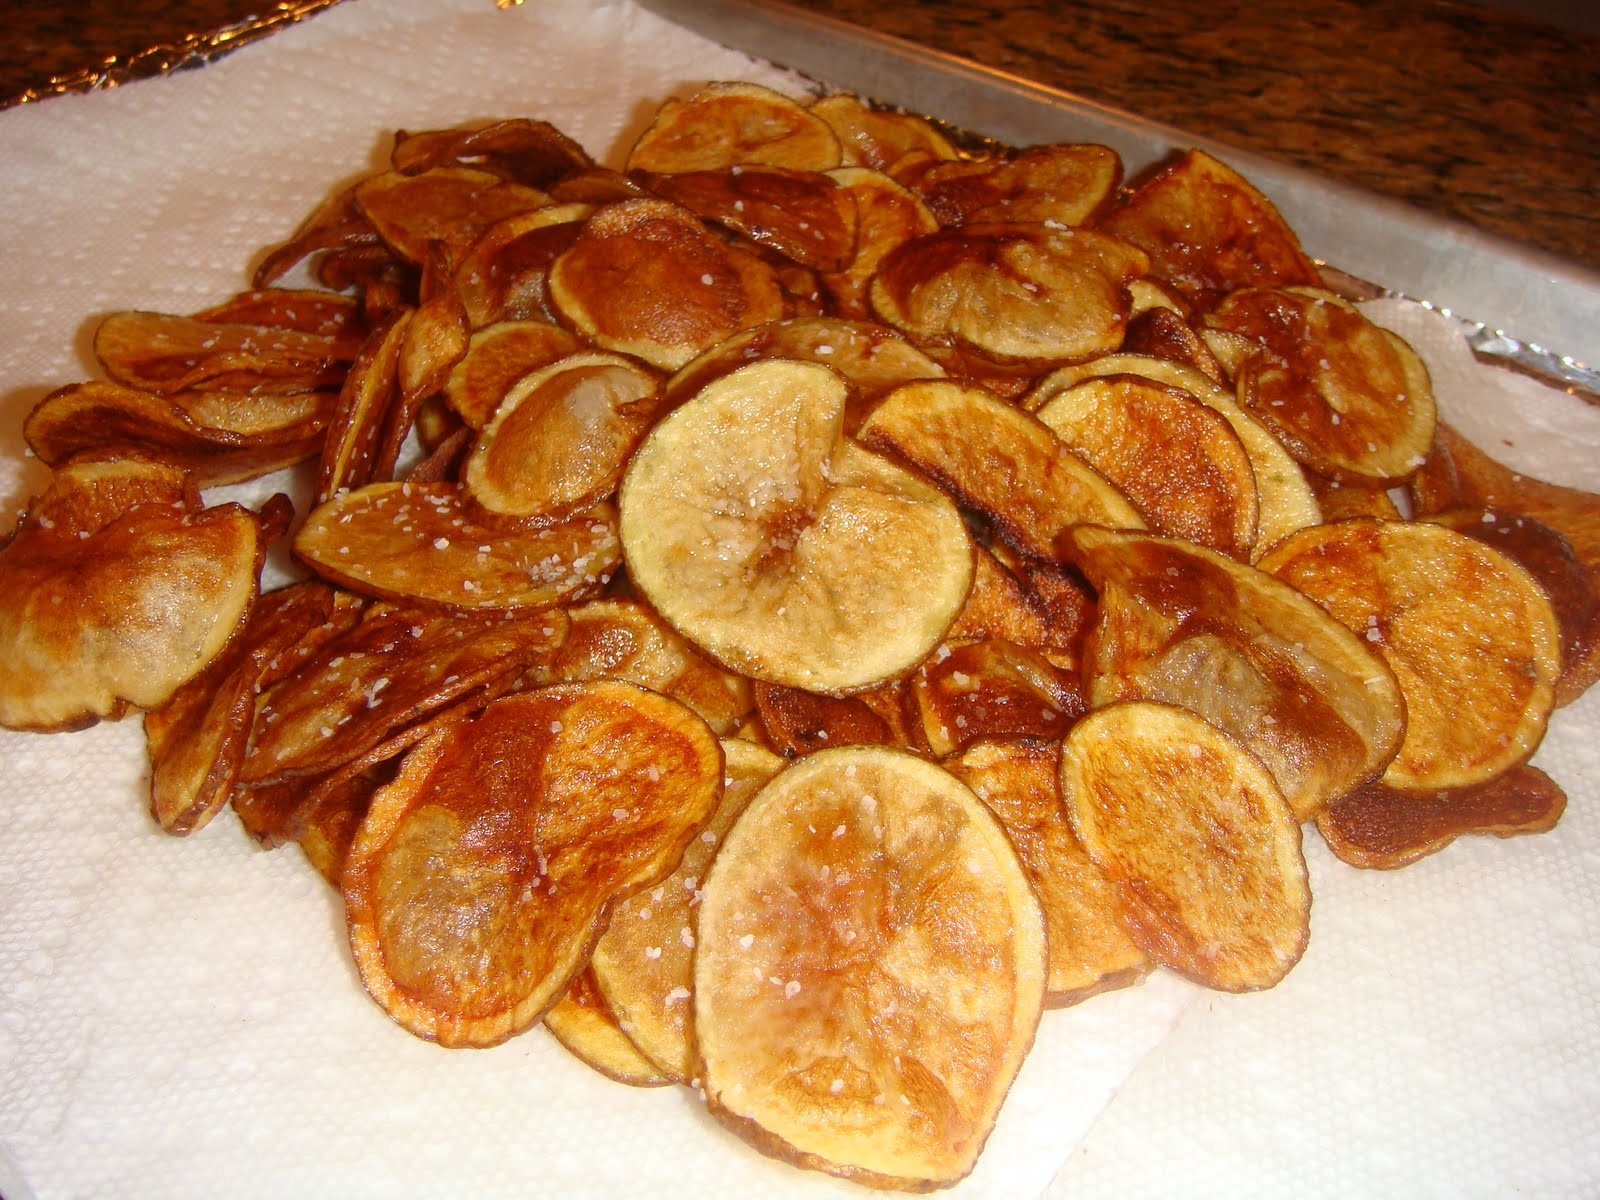 Our Blissfully Delicious Life: Homemade Potato Chips